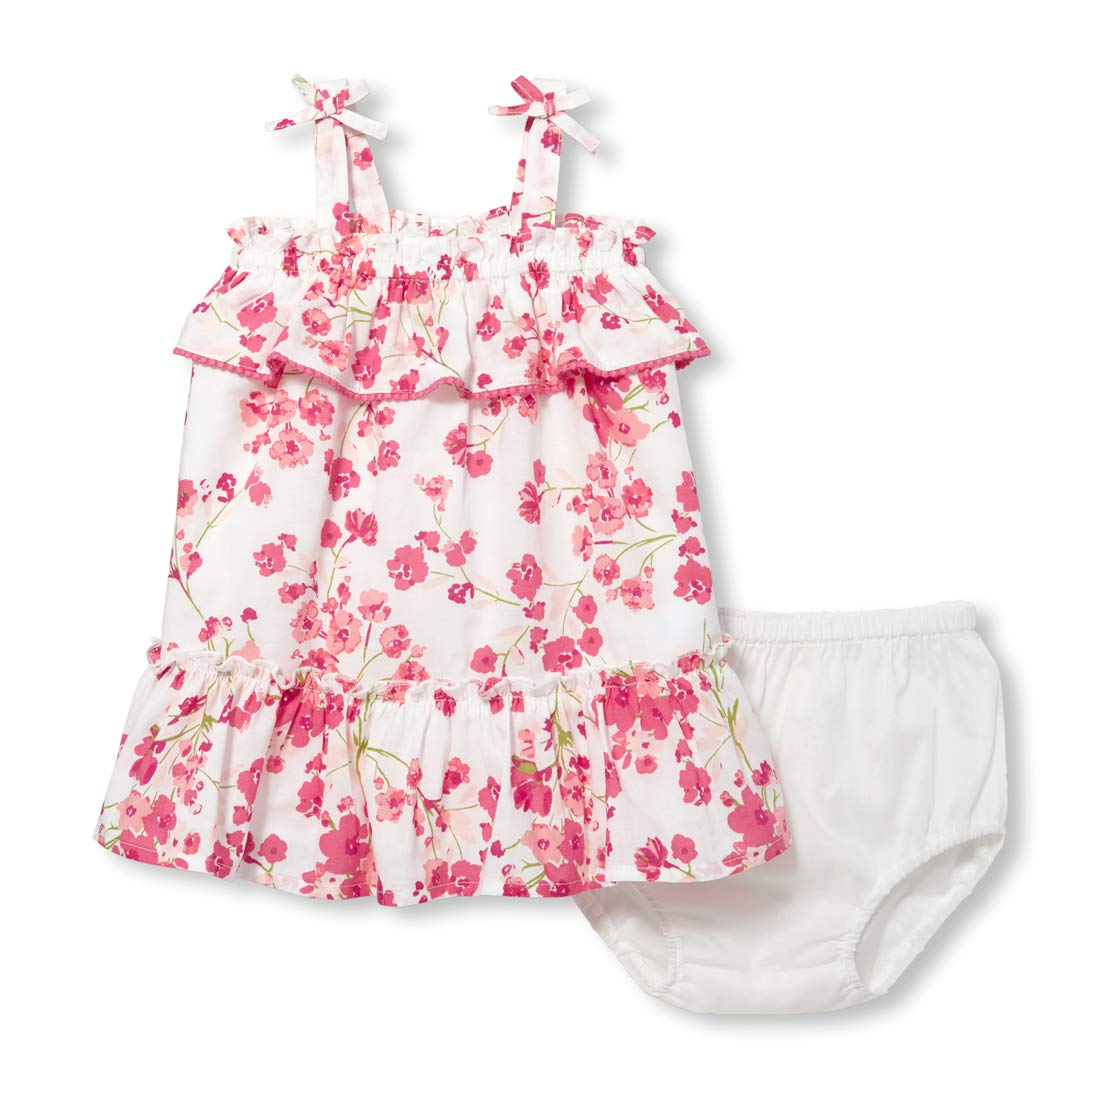 51fbcd3f Amazon.com: The Children's Place Baby Girls Graphic Sleeveless Floral  Bloomer Dress Set: Clothing